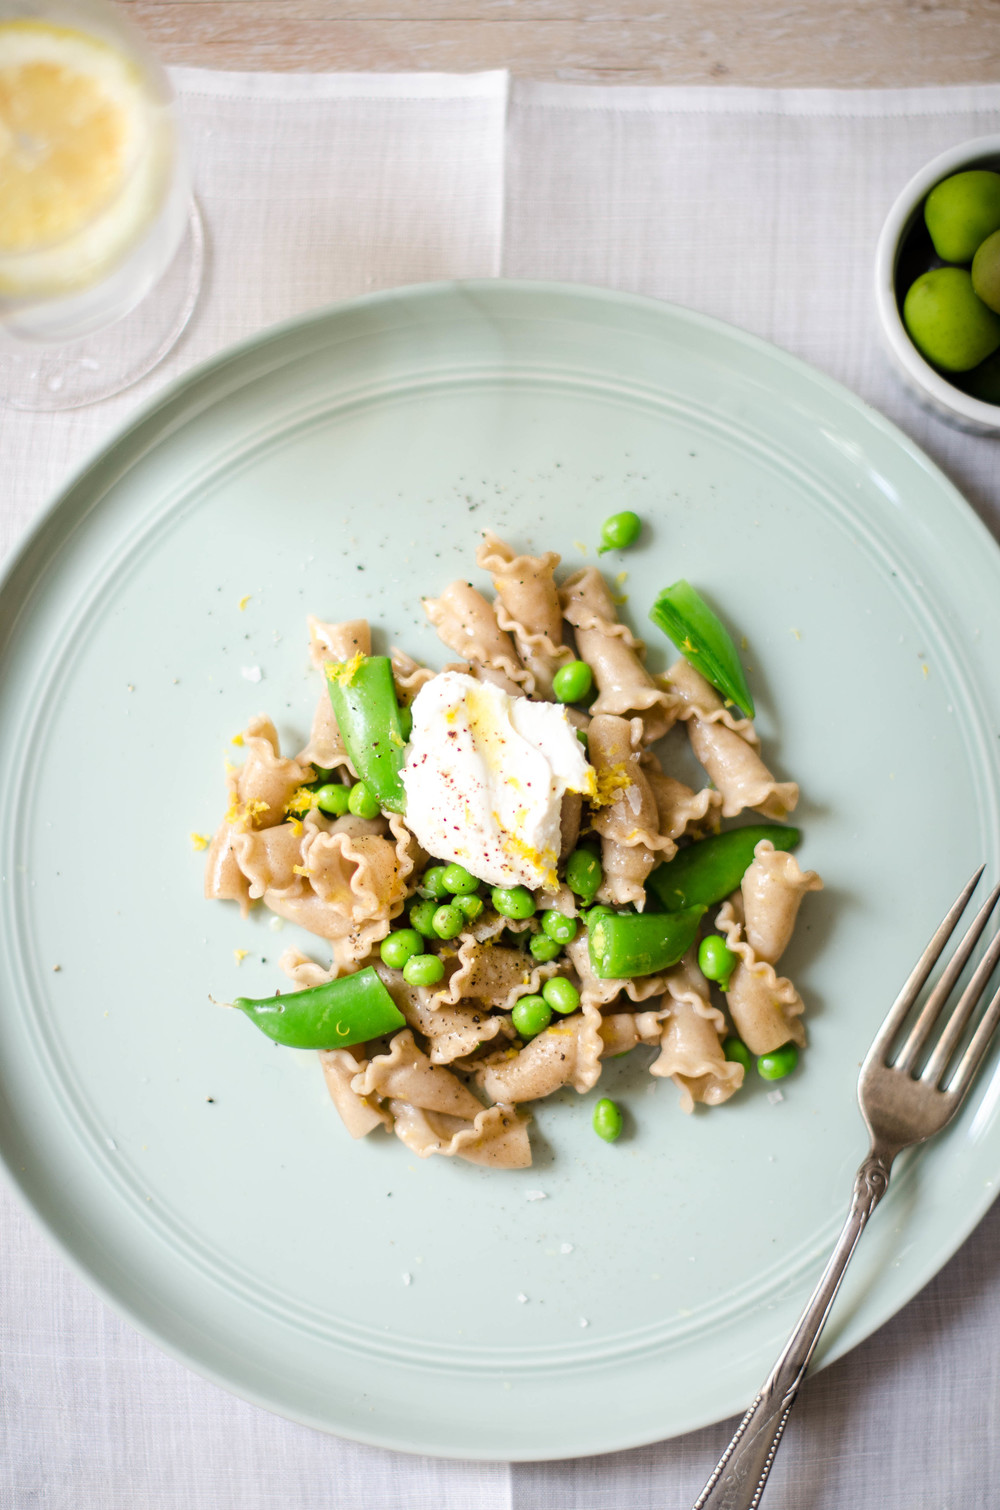 ROSE & IVY JOURNAL LEMONY PASTA WITH SNAP PEAS & RICOTTA